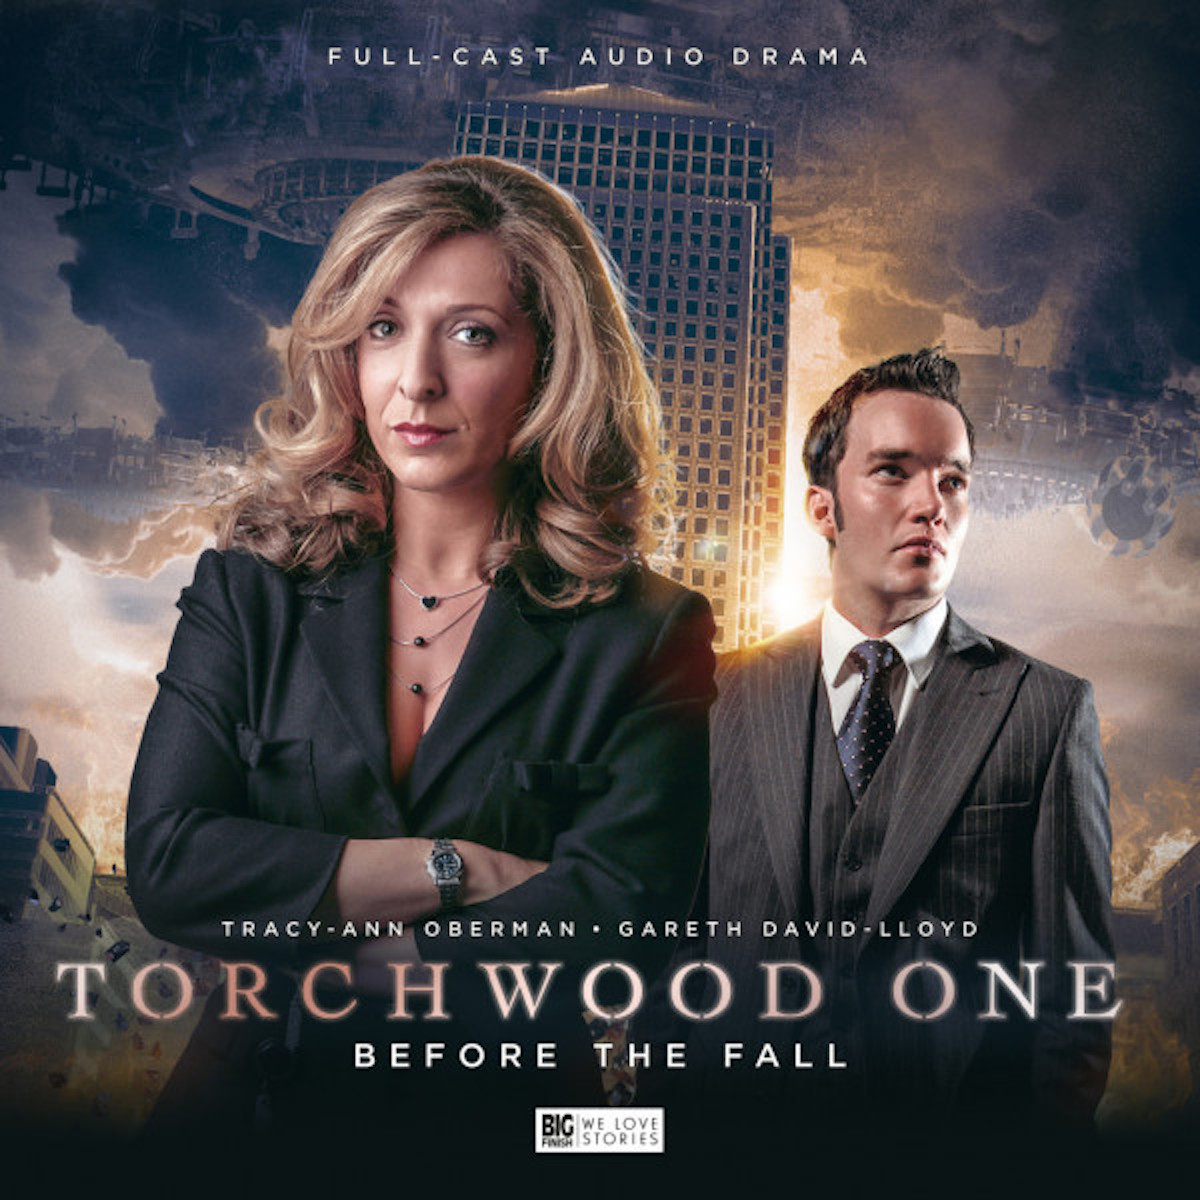 Torchwood One Before The Fall